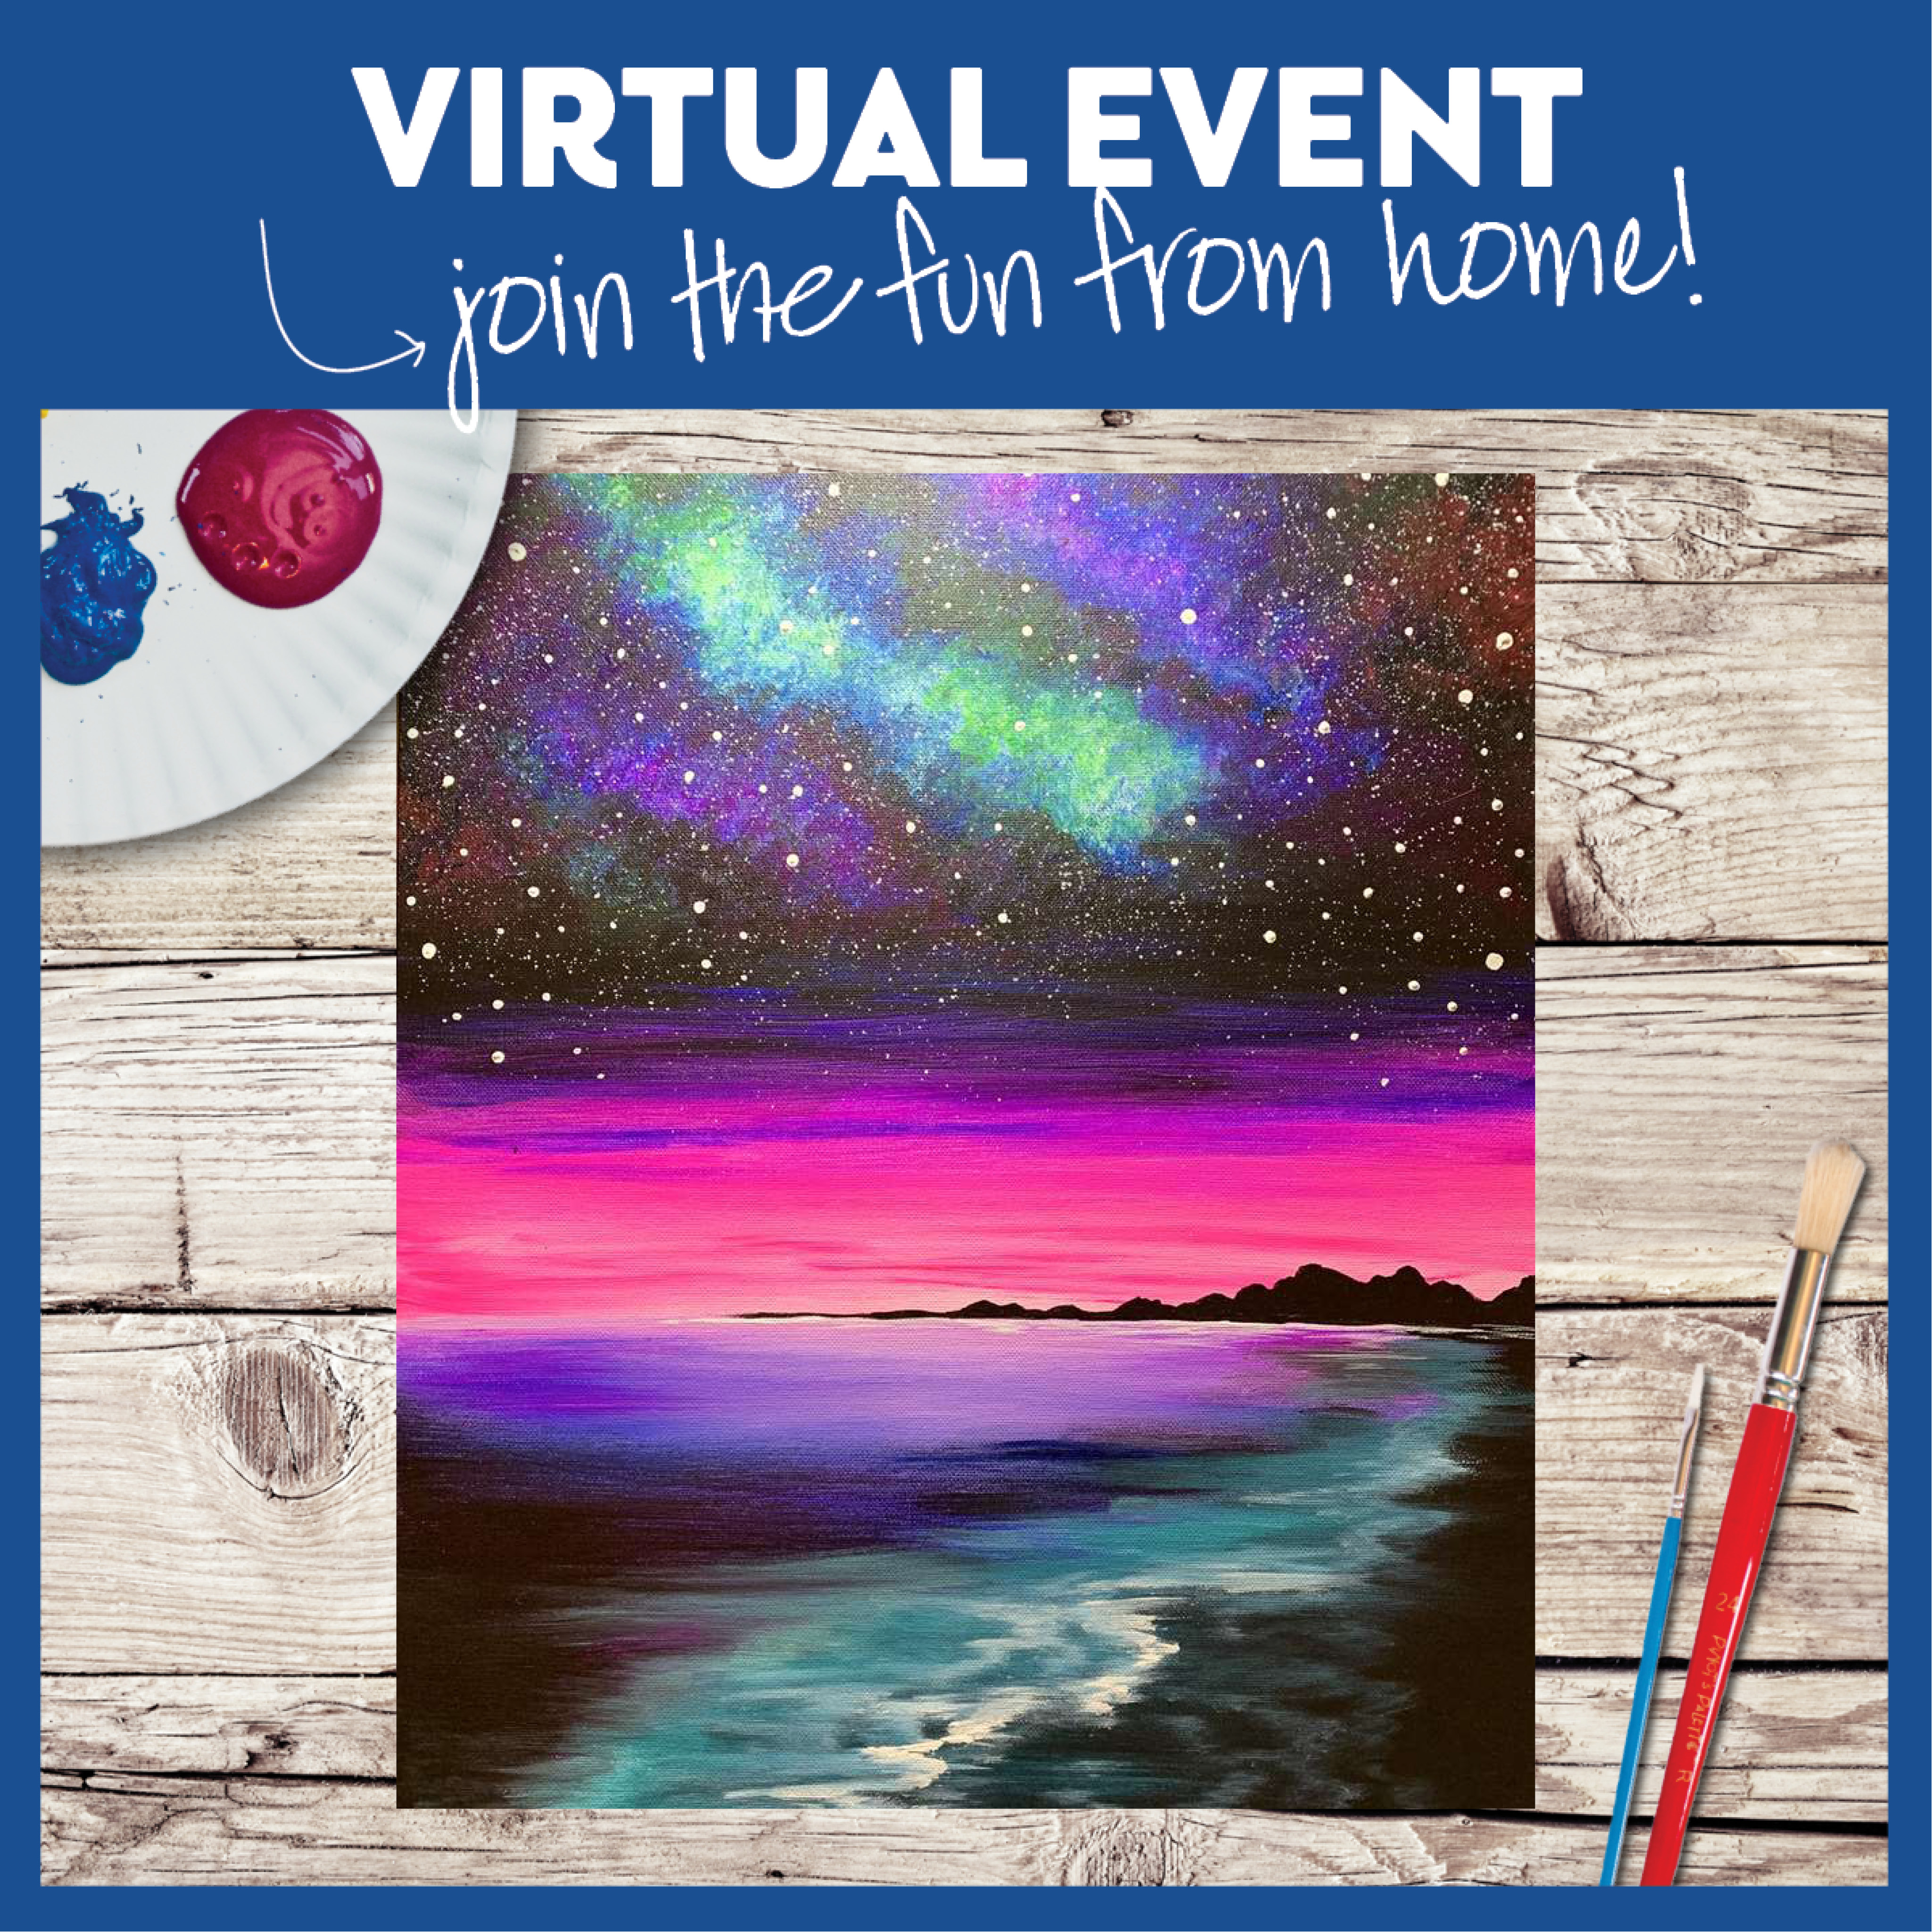 LIVE VIRTUAL CLASS: GALAXY BEACH - WITH ART KIT OR PROVIDE YOUR OWN SUPPLIES